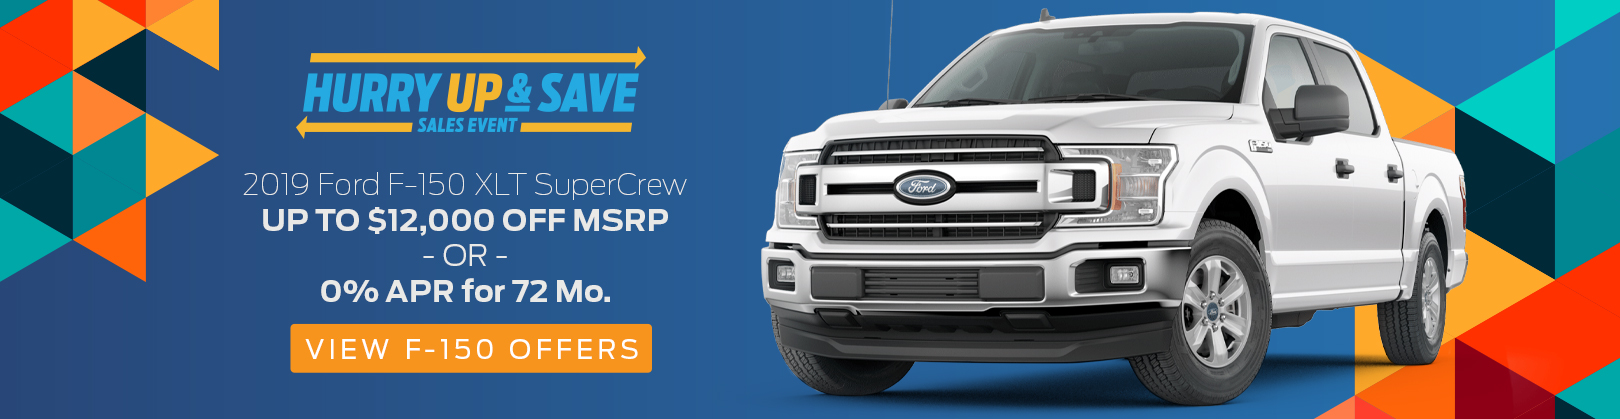 Welcome to Acton Ford | Ford Dealership near Boston, MA